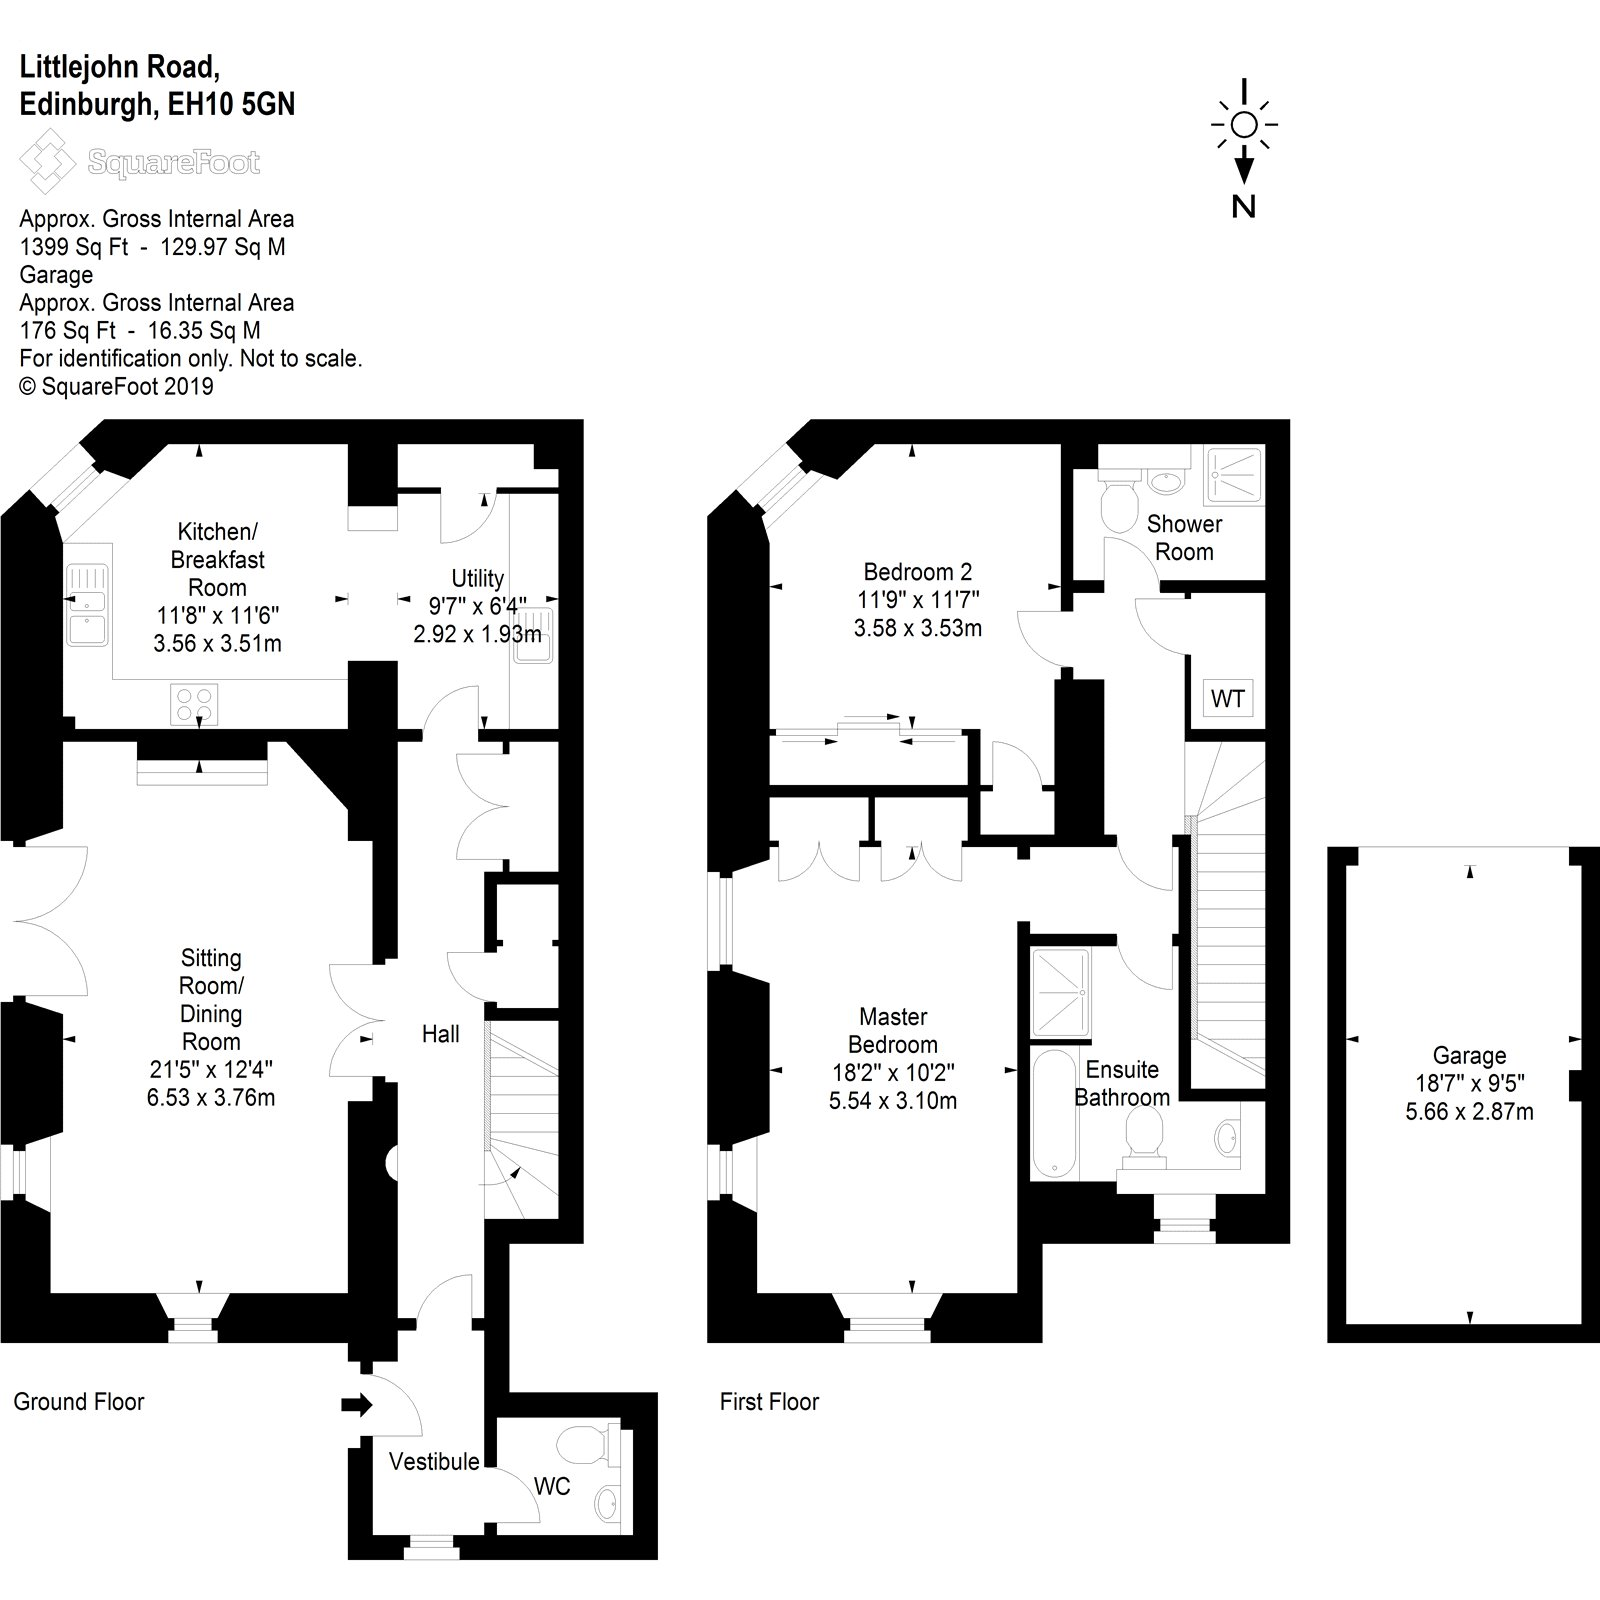 Floorplans for Littlejohn Road, Greenbank Village, Edinburgh, EH10